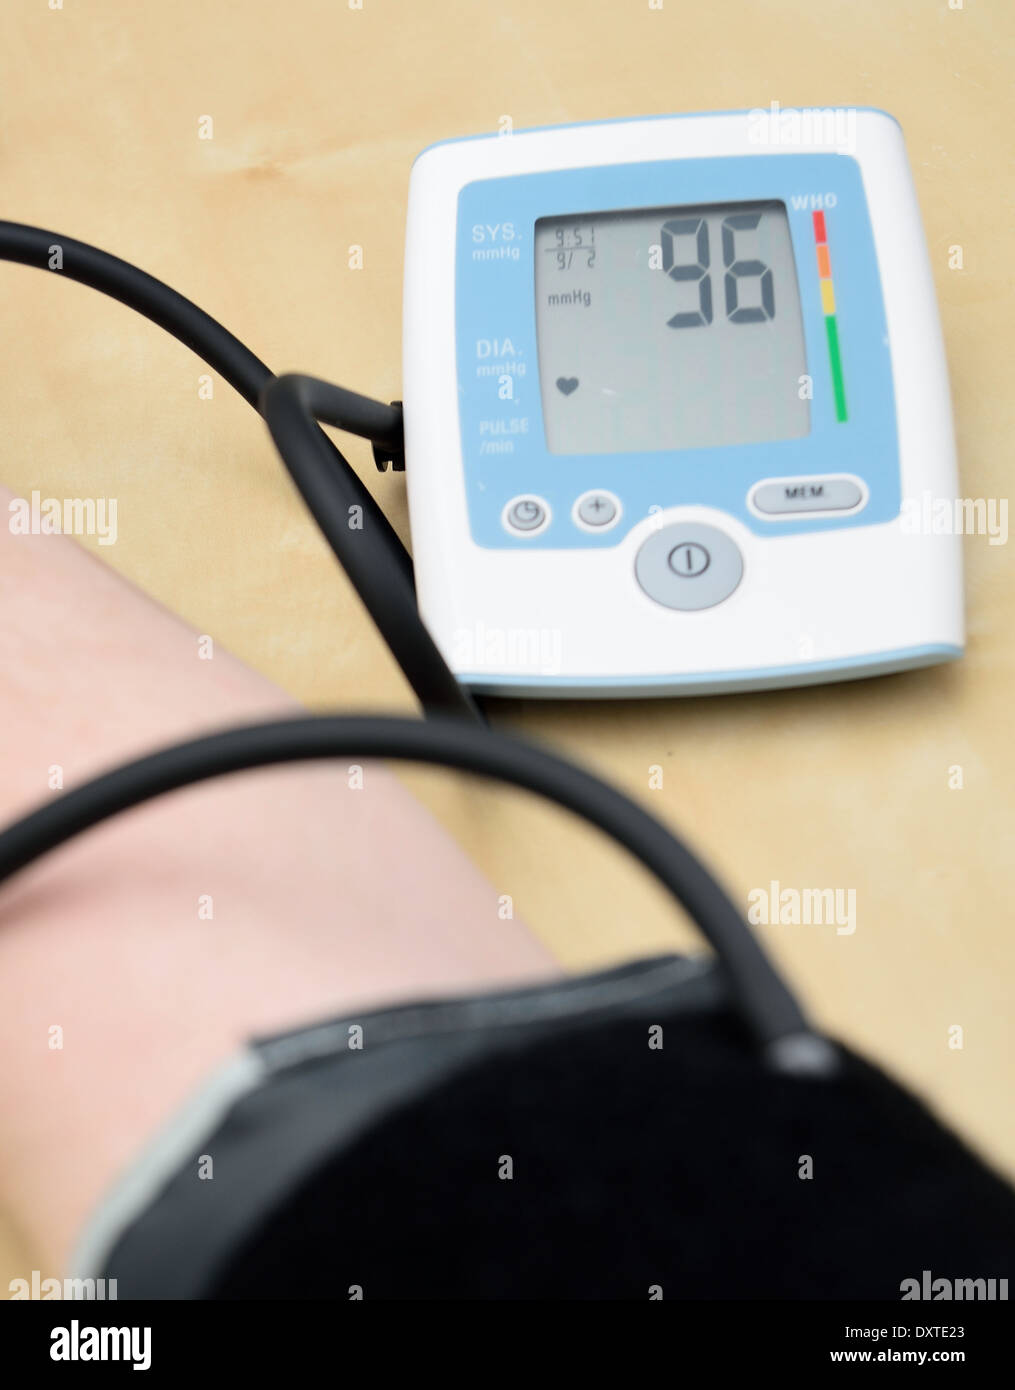 Instrument for measuring blood pressure on hand. Closeup shot. - Stock Image